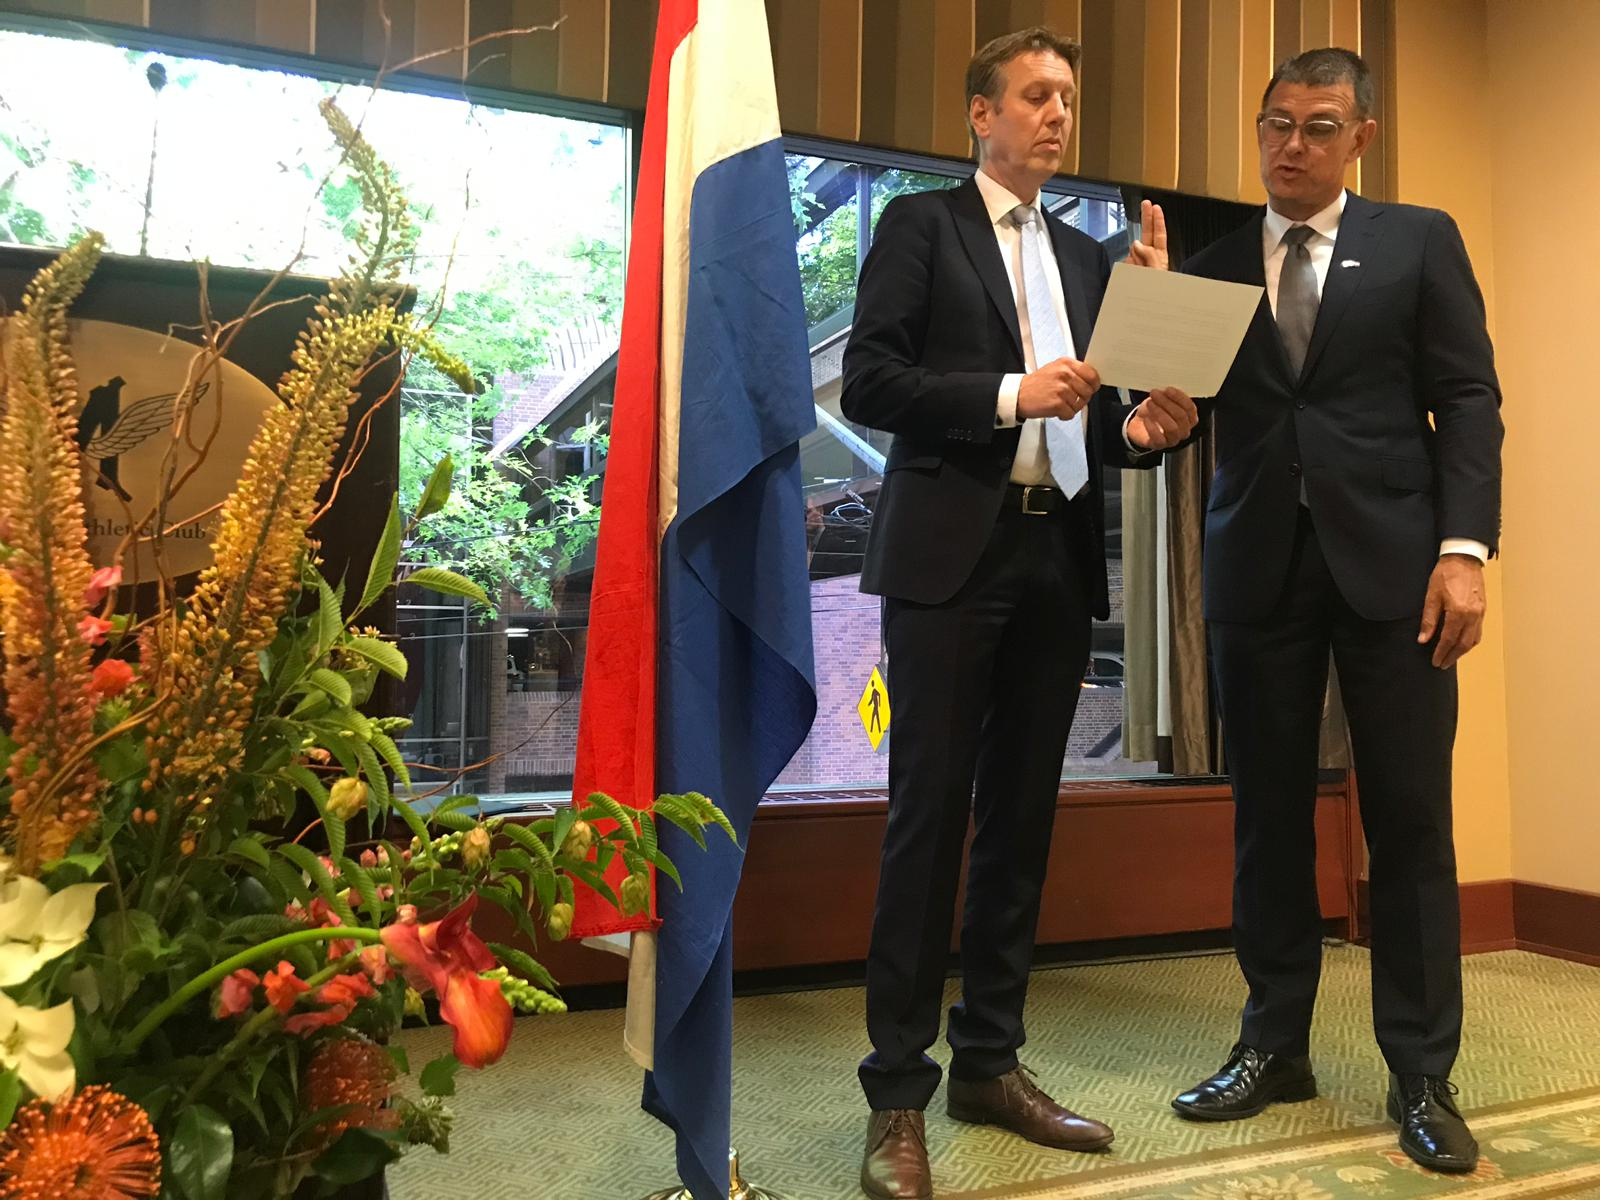 Van Hameren named honorary consul in Oregon